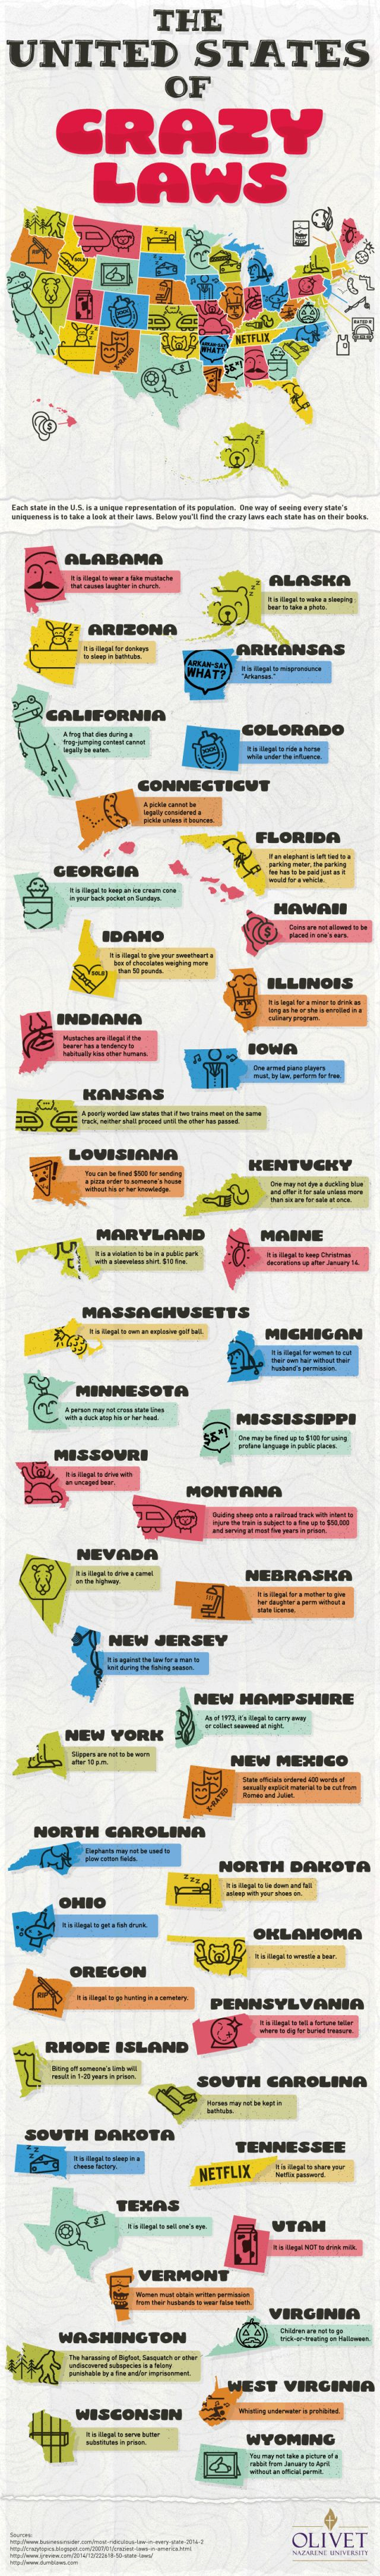 """The graphic highlights the wackiest laws in each state, and while some are certainly antiquated rules that have """"fallen through the cracks,"""" others still apply in 2016."""